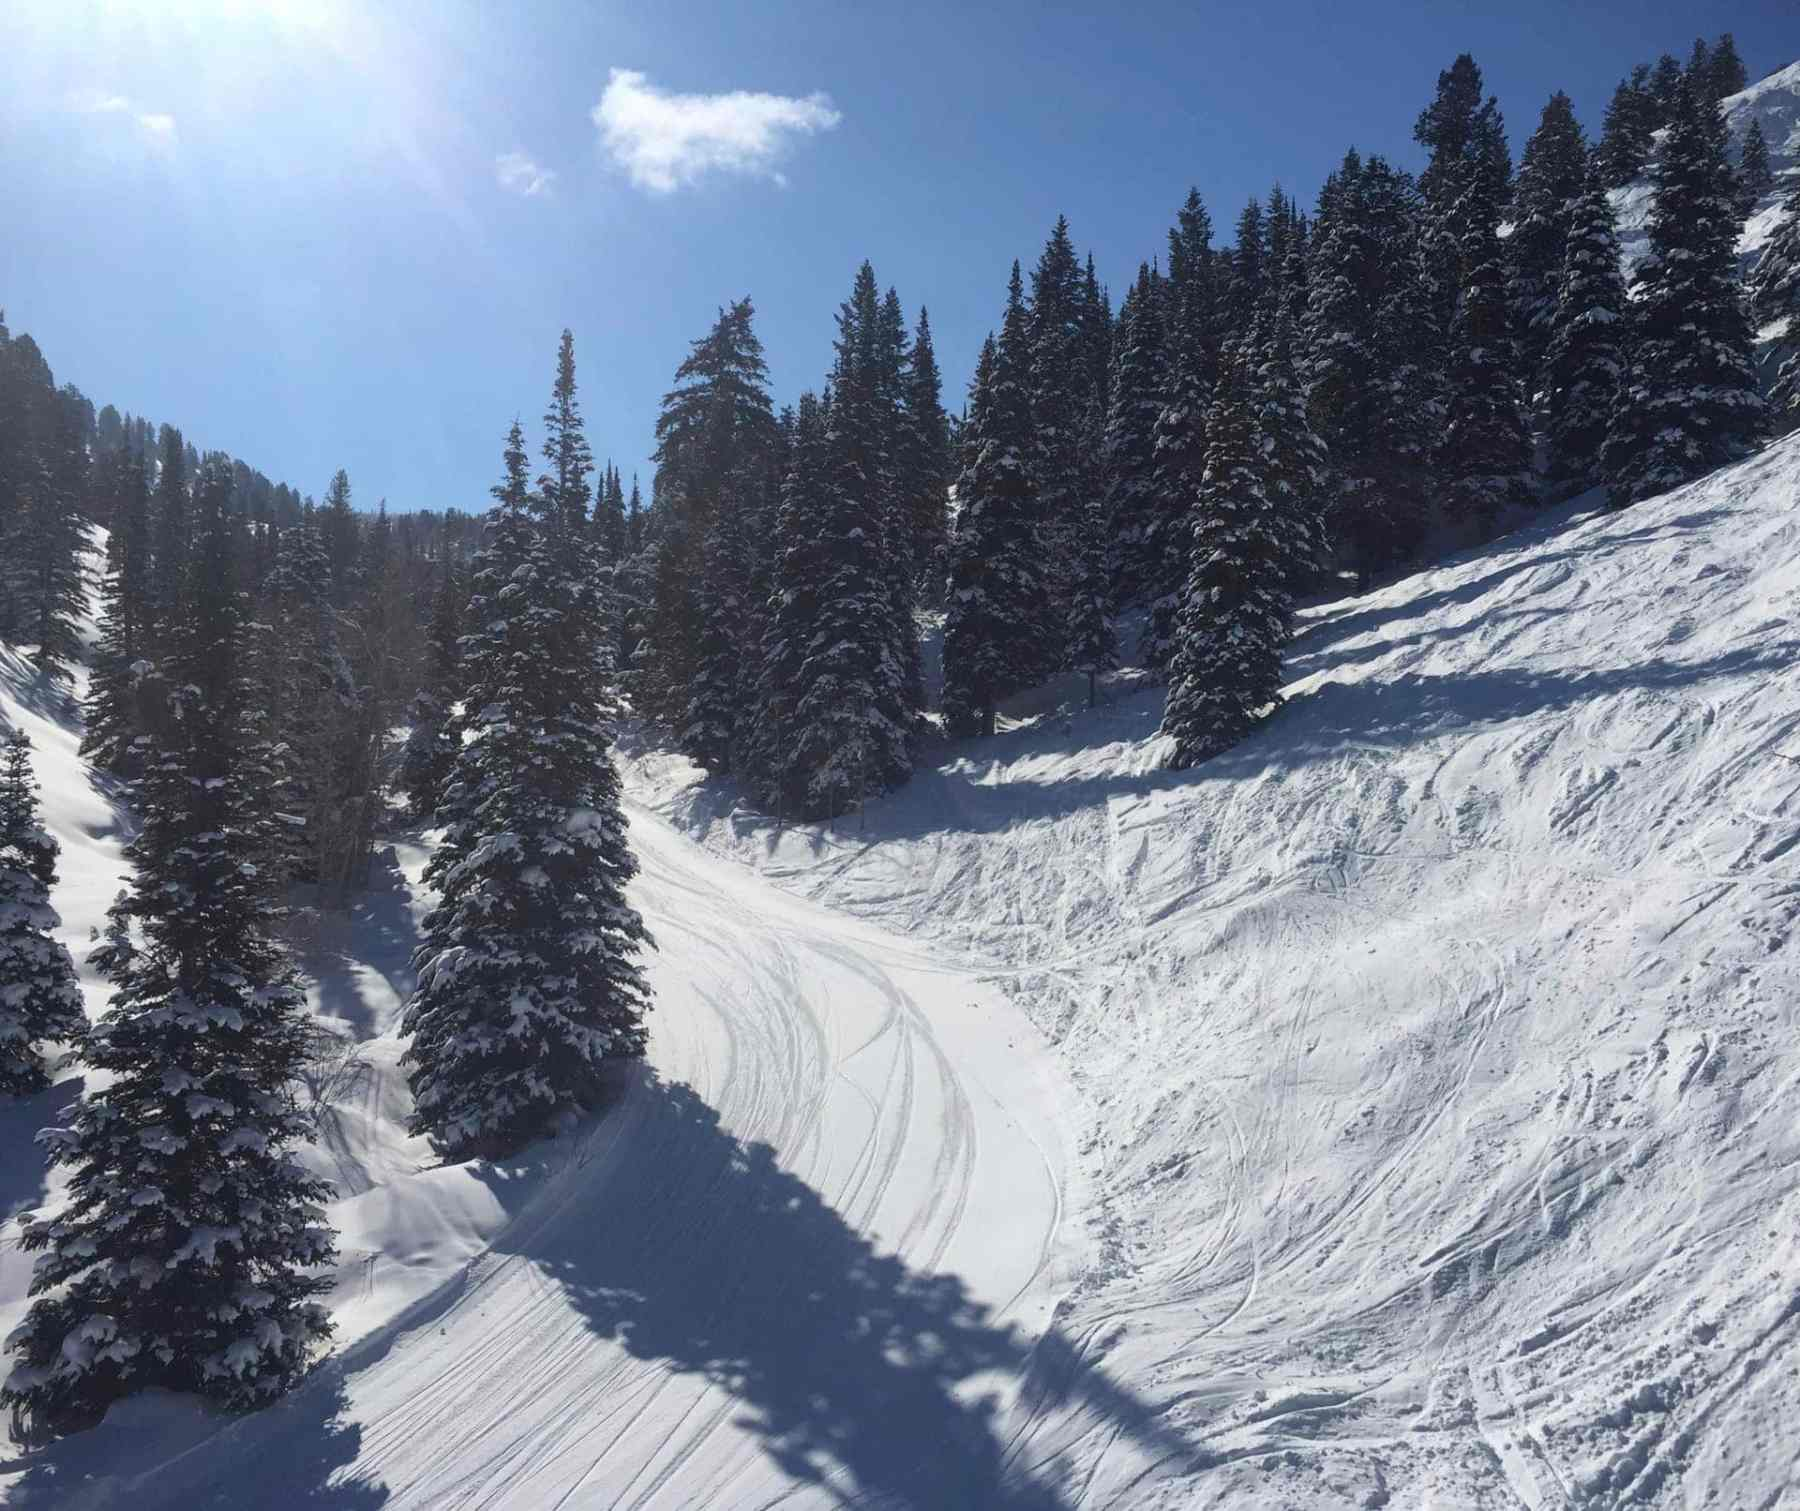 Such a beautiful day and great snow conditions!